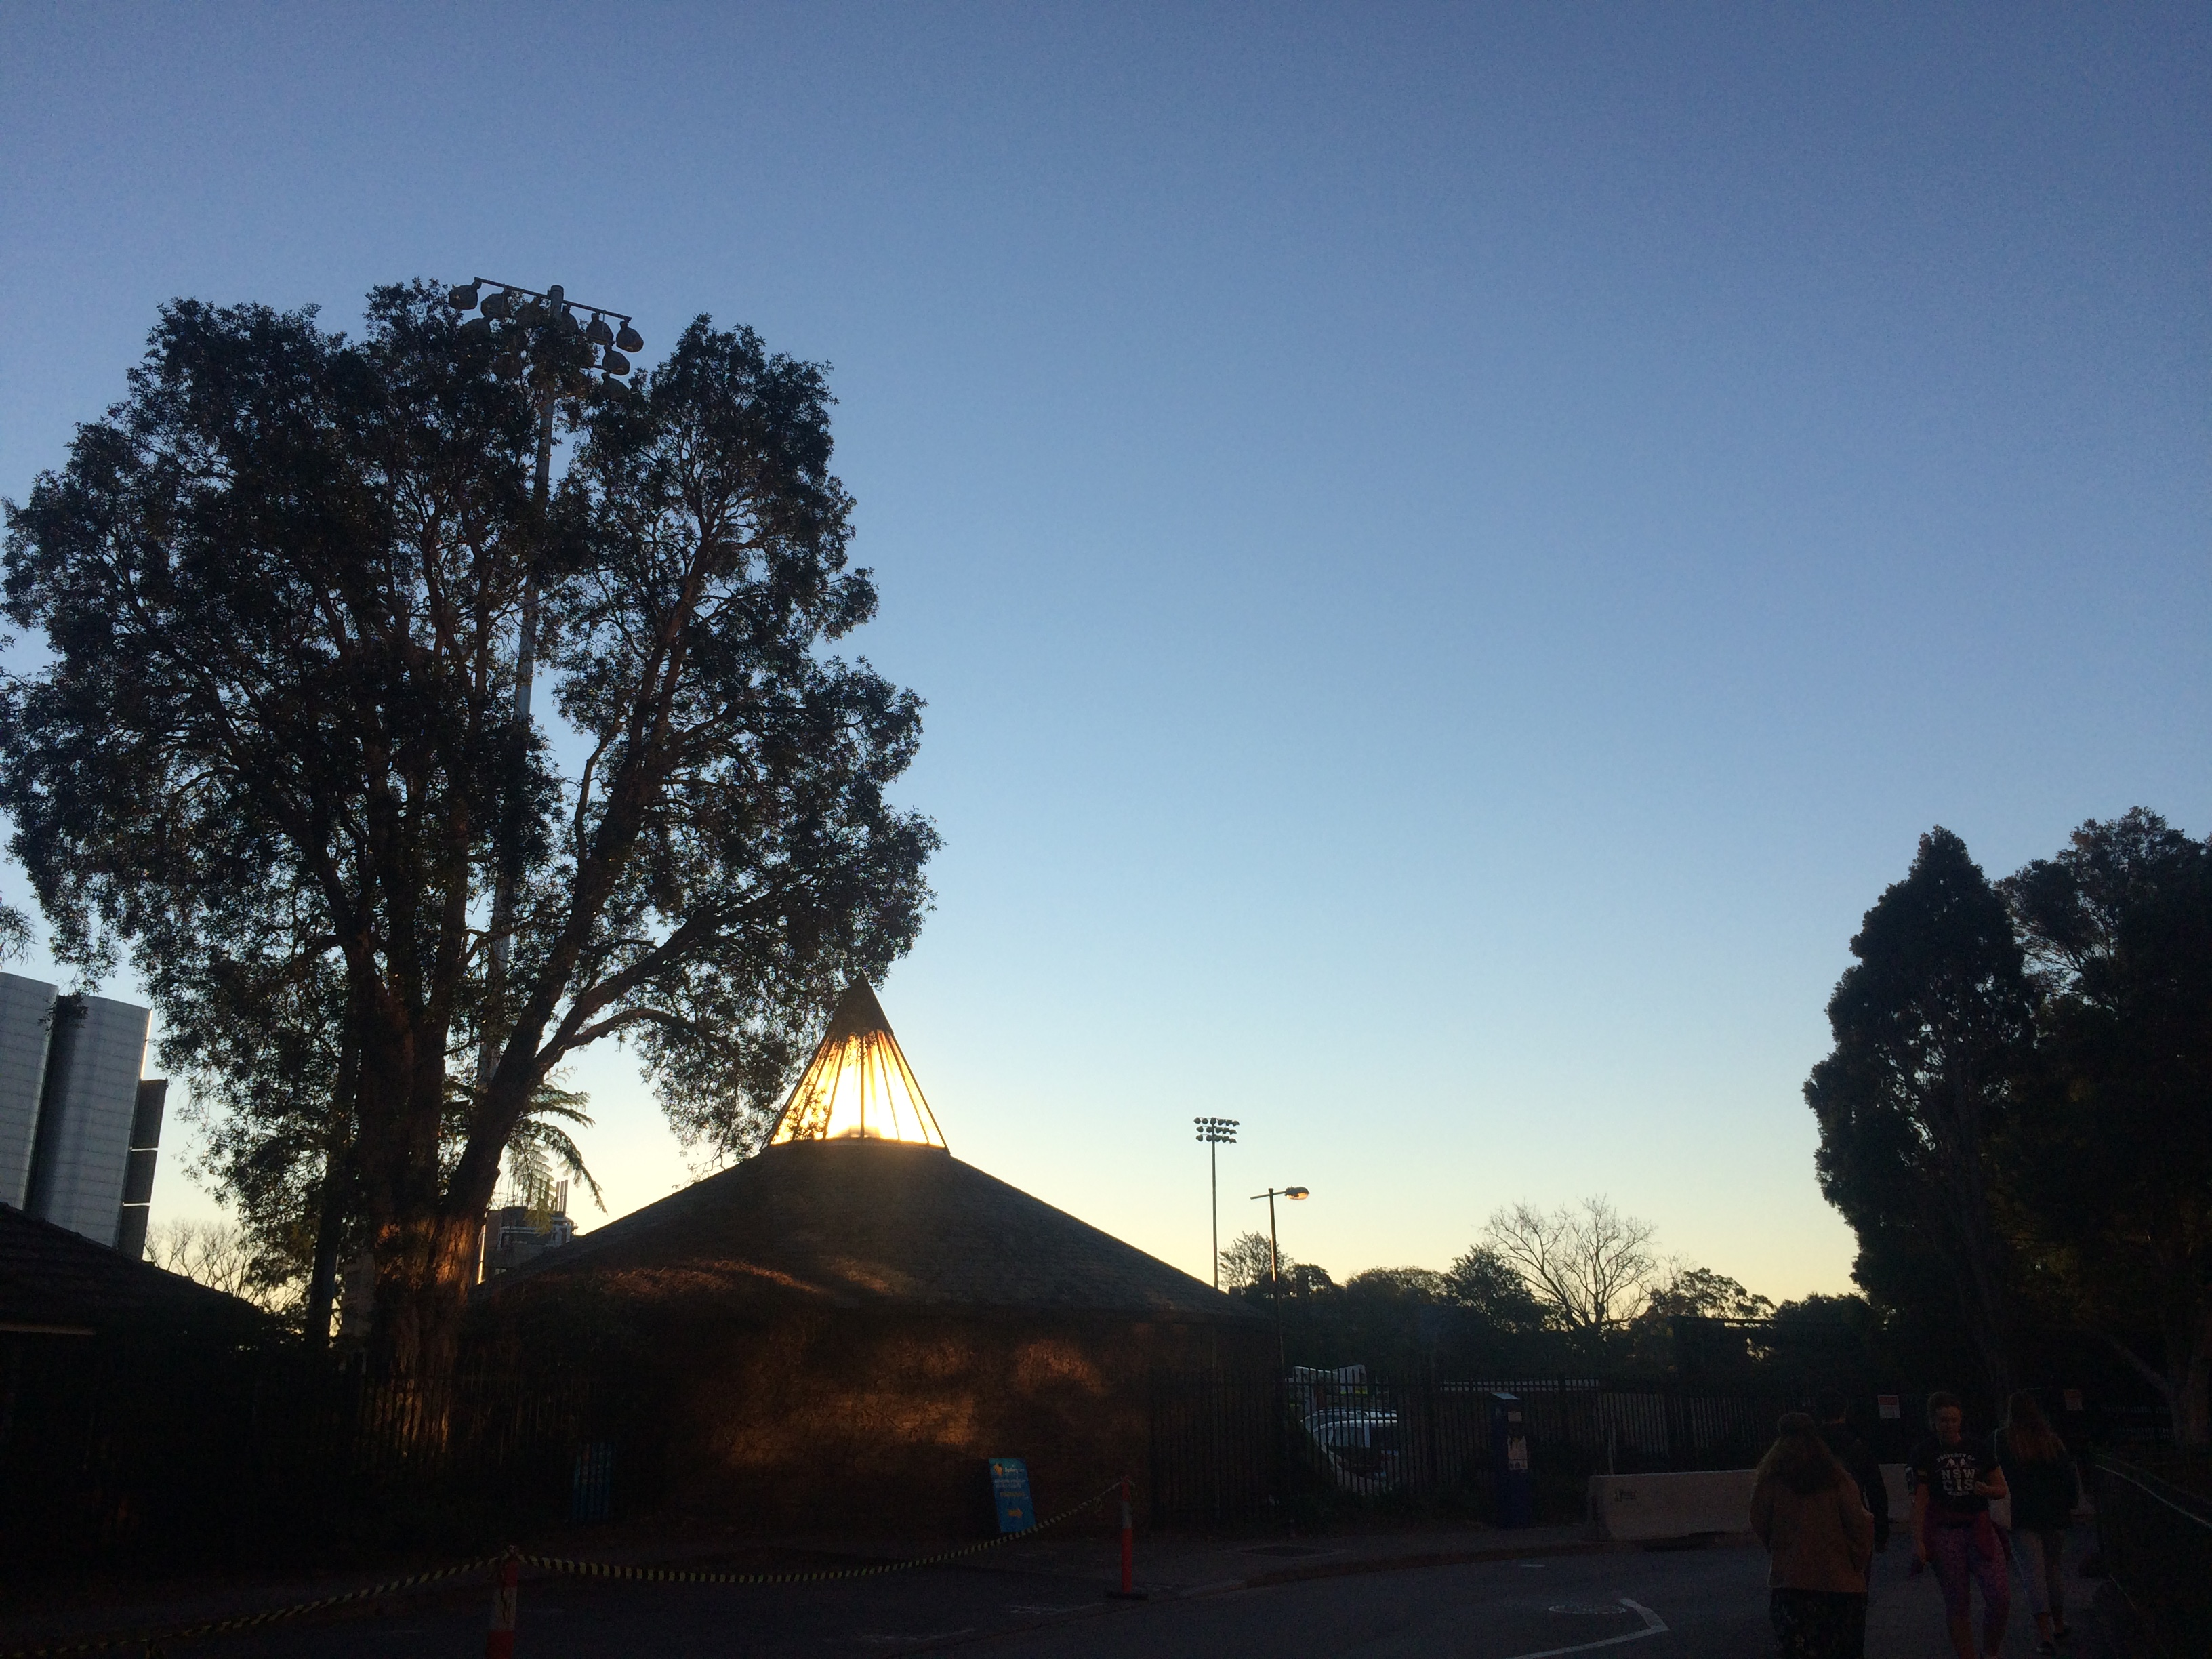 The dusk of Sydney Uni